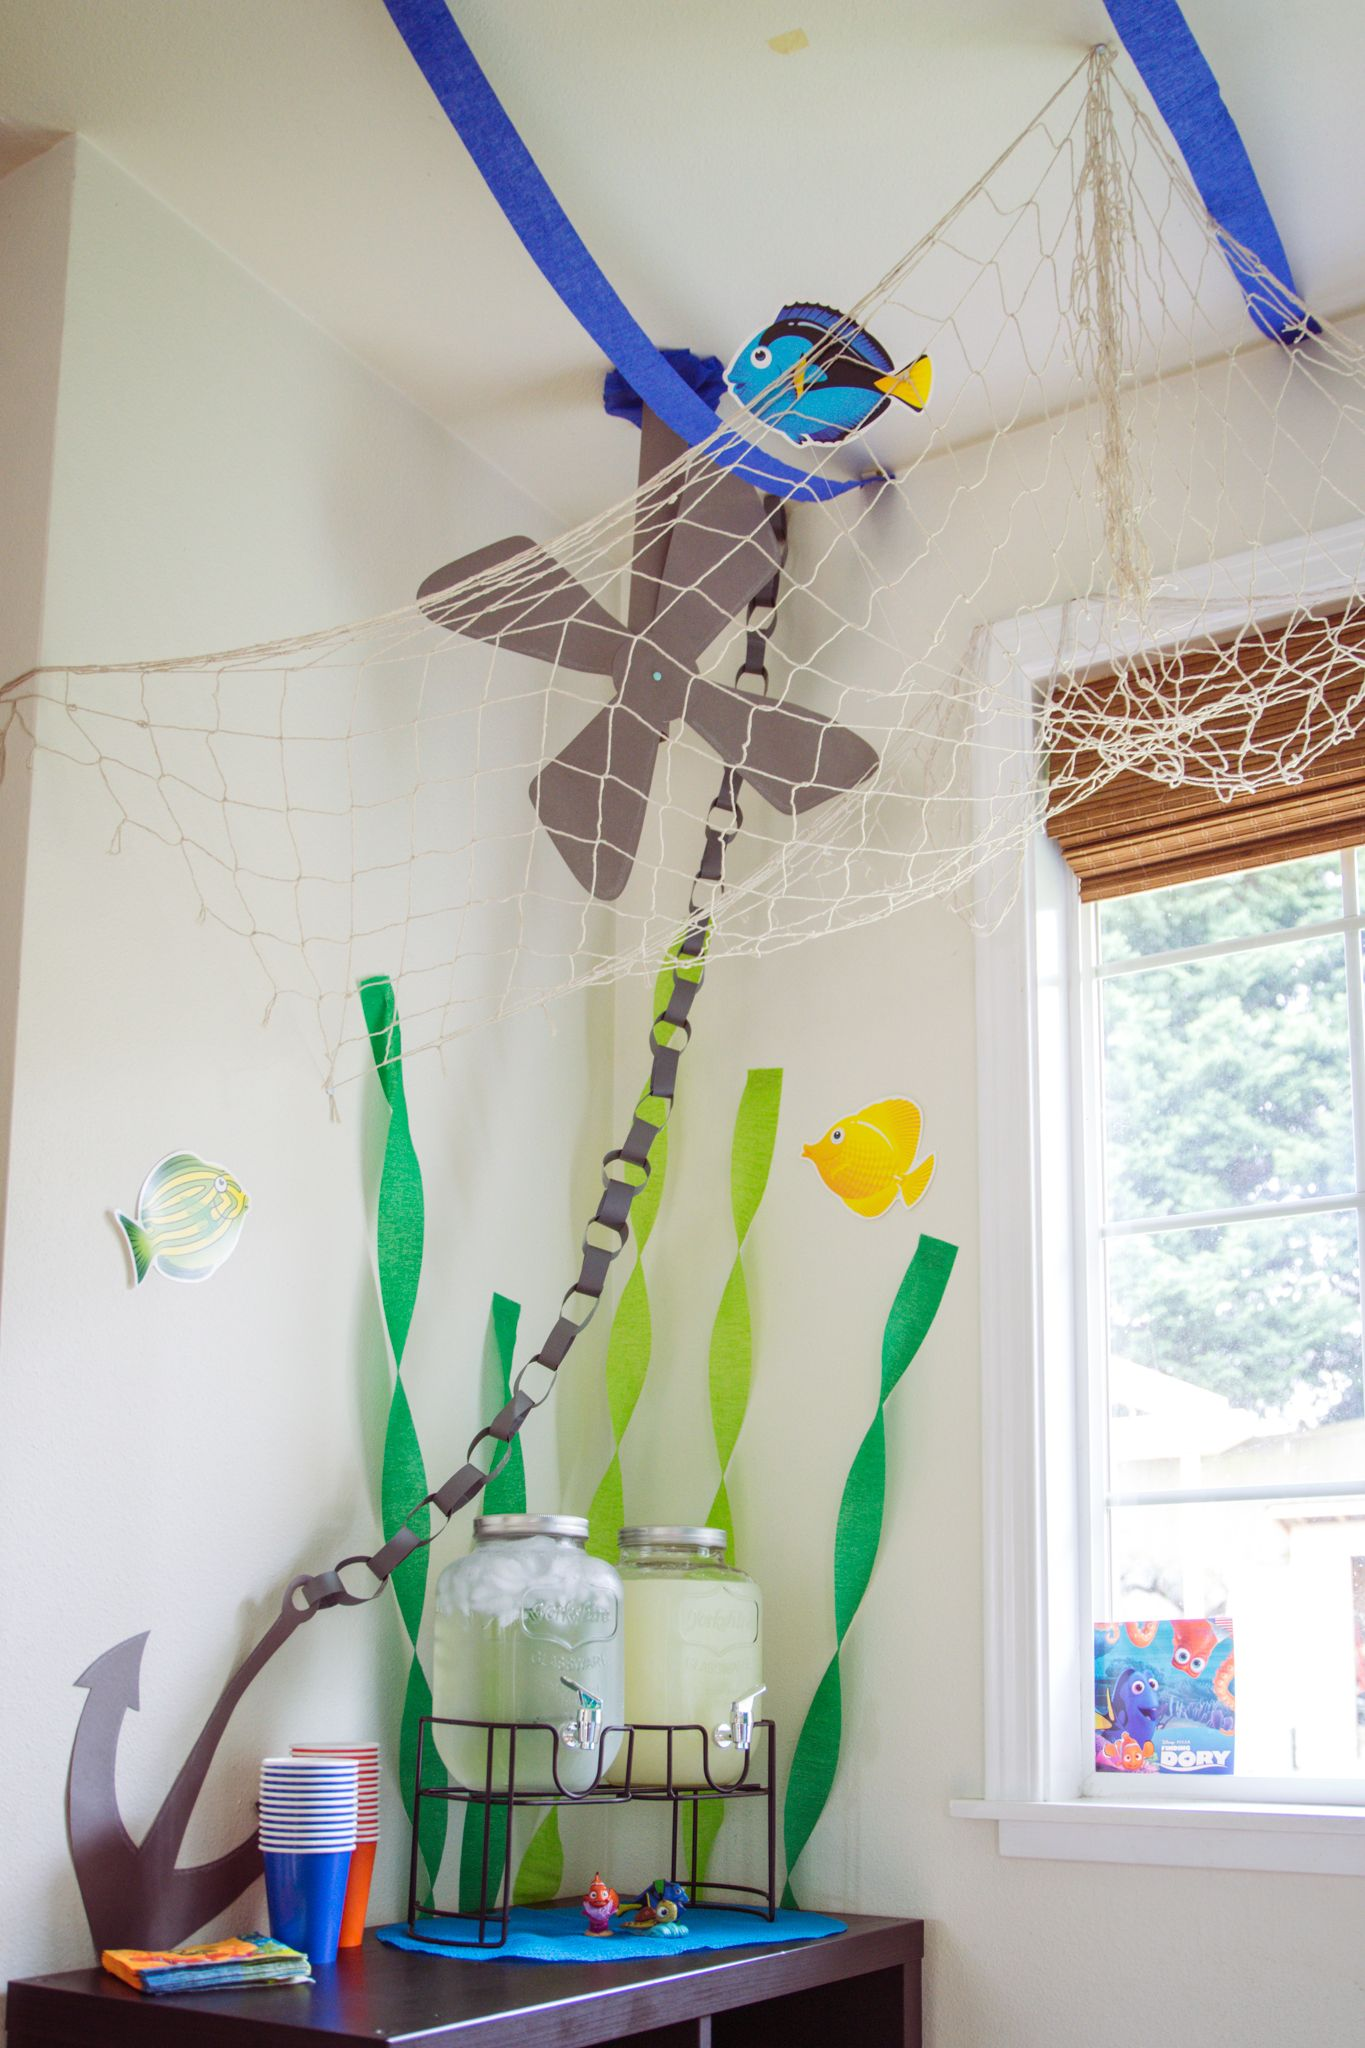 Finding Dory Party decoration idea #FindingDoryParty #FindingNemoParty